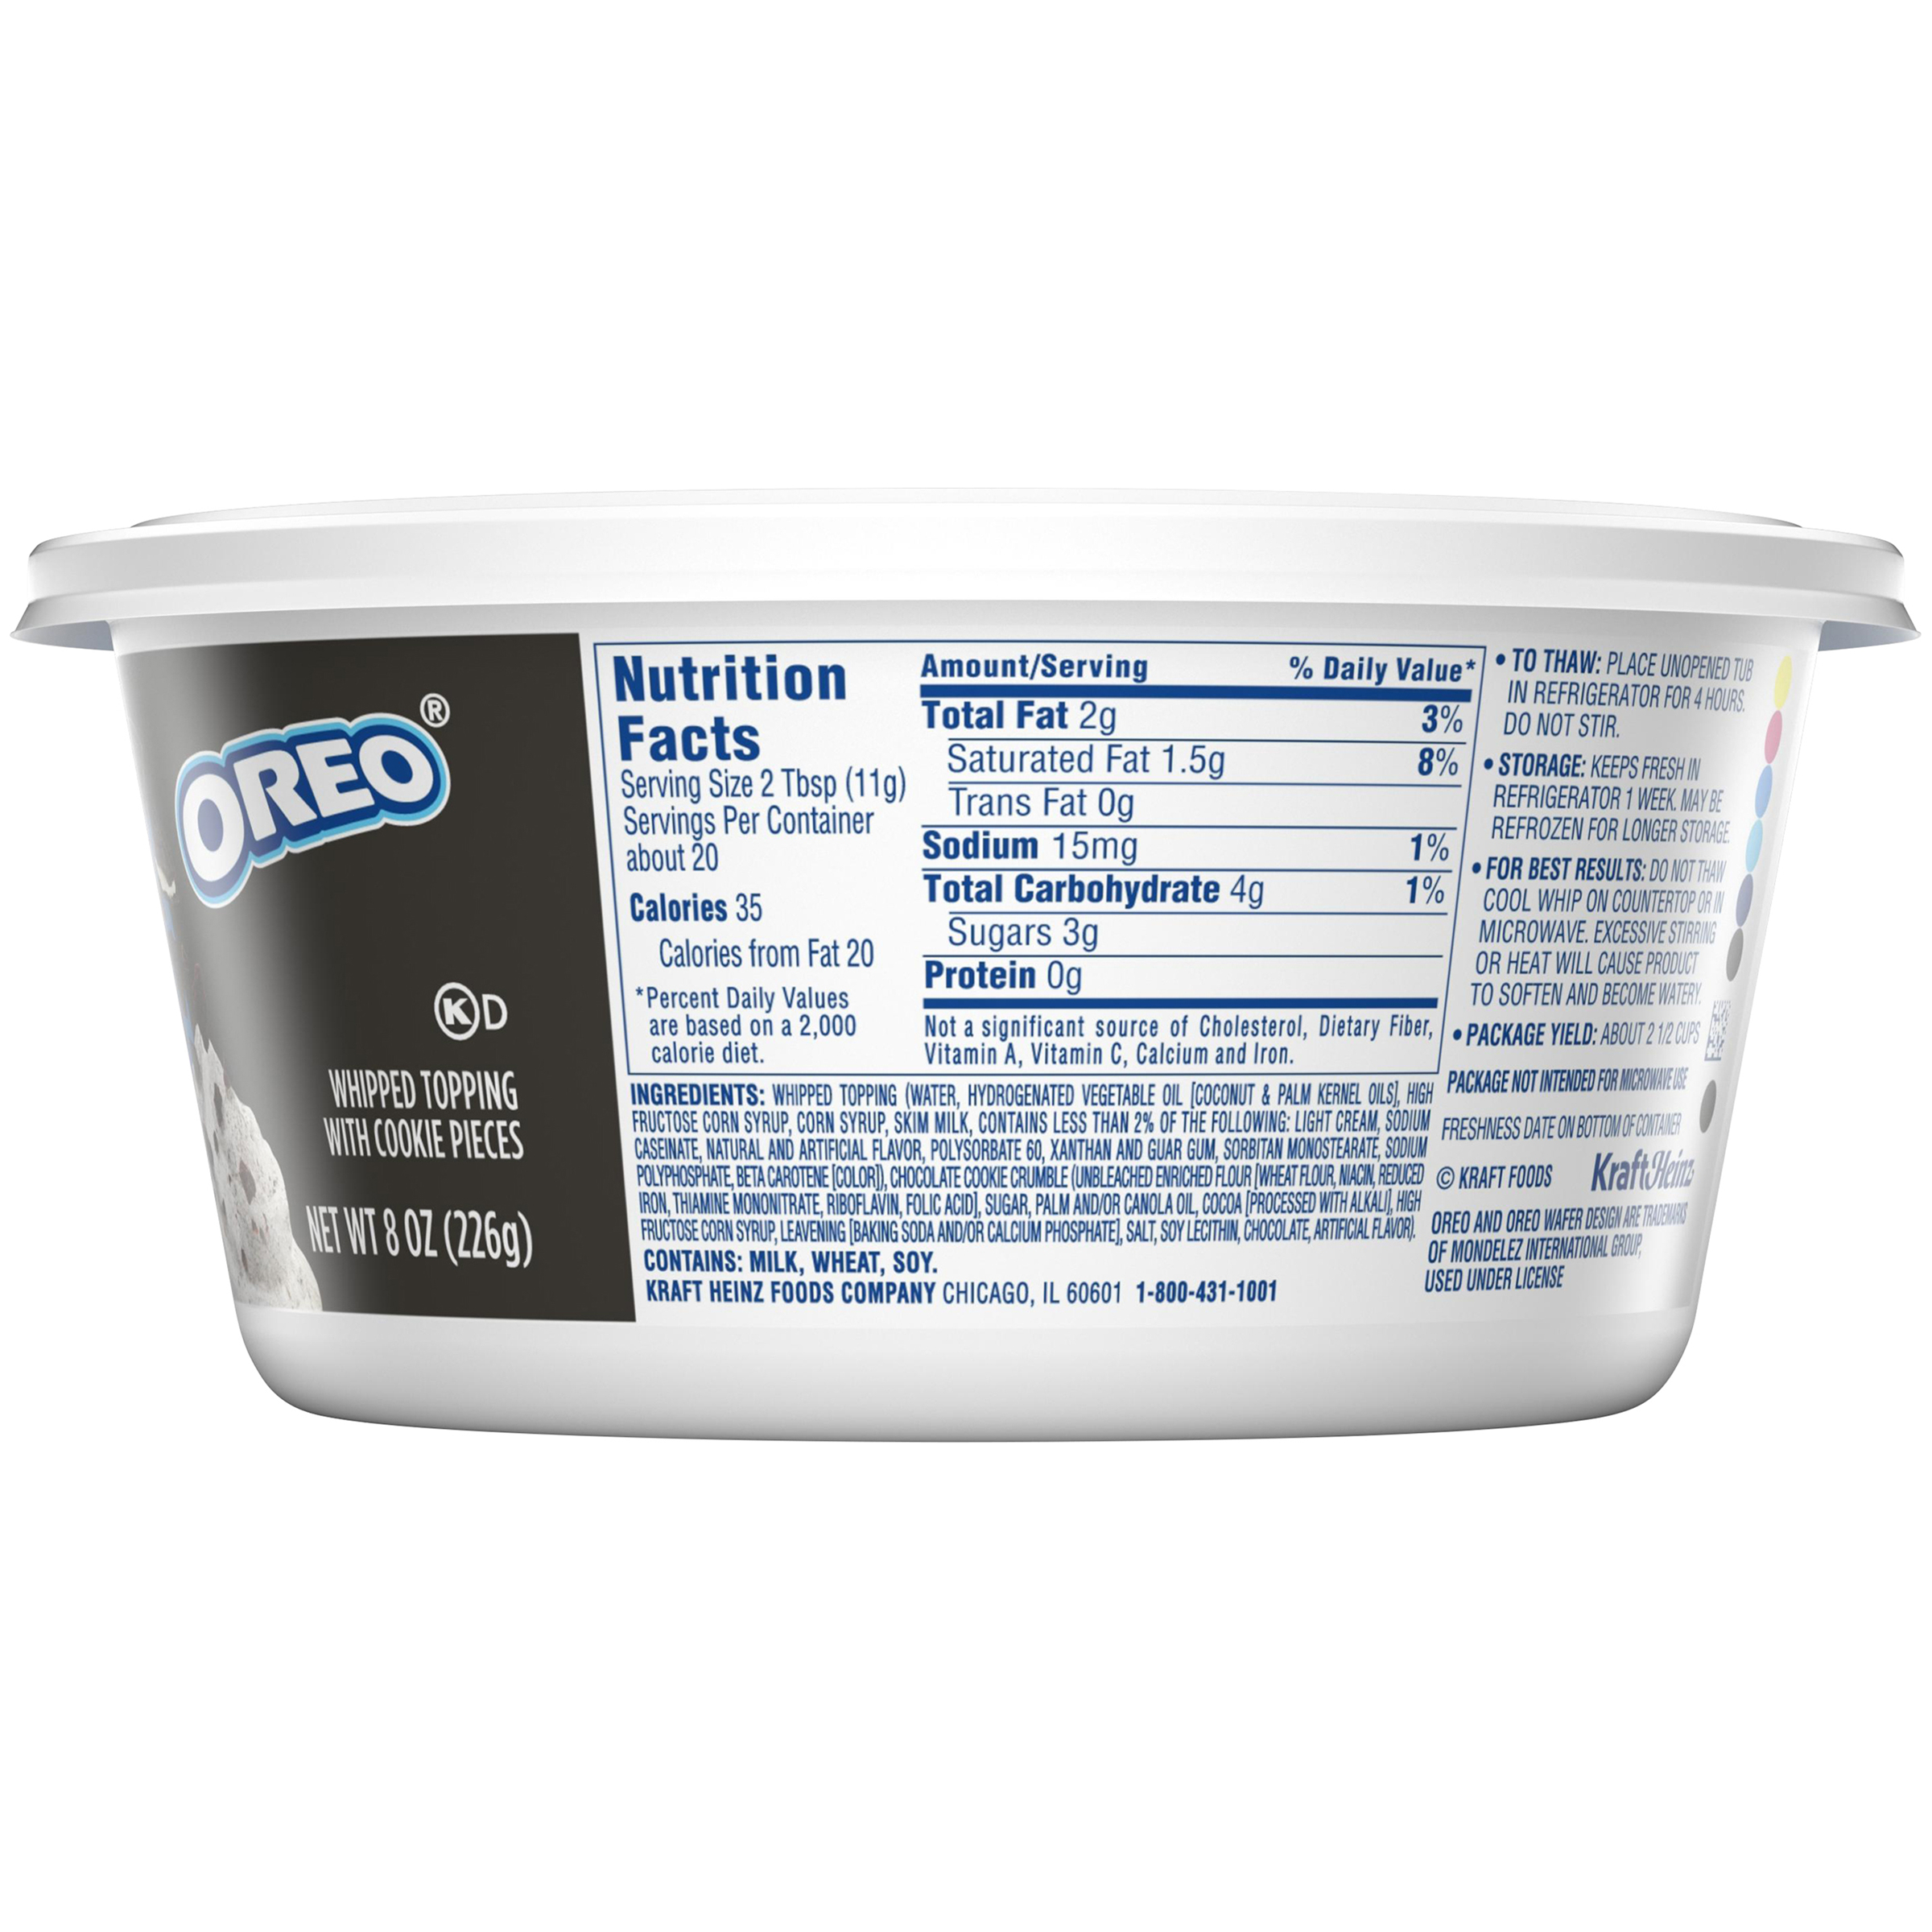 Cool Whip Mix Ins Oreo Cookie Whipped Topping 8 Oz Tub Walmart Com